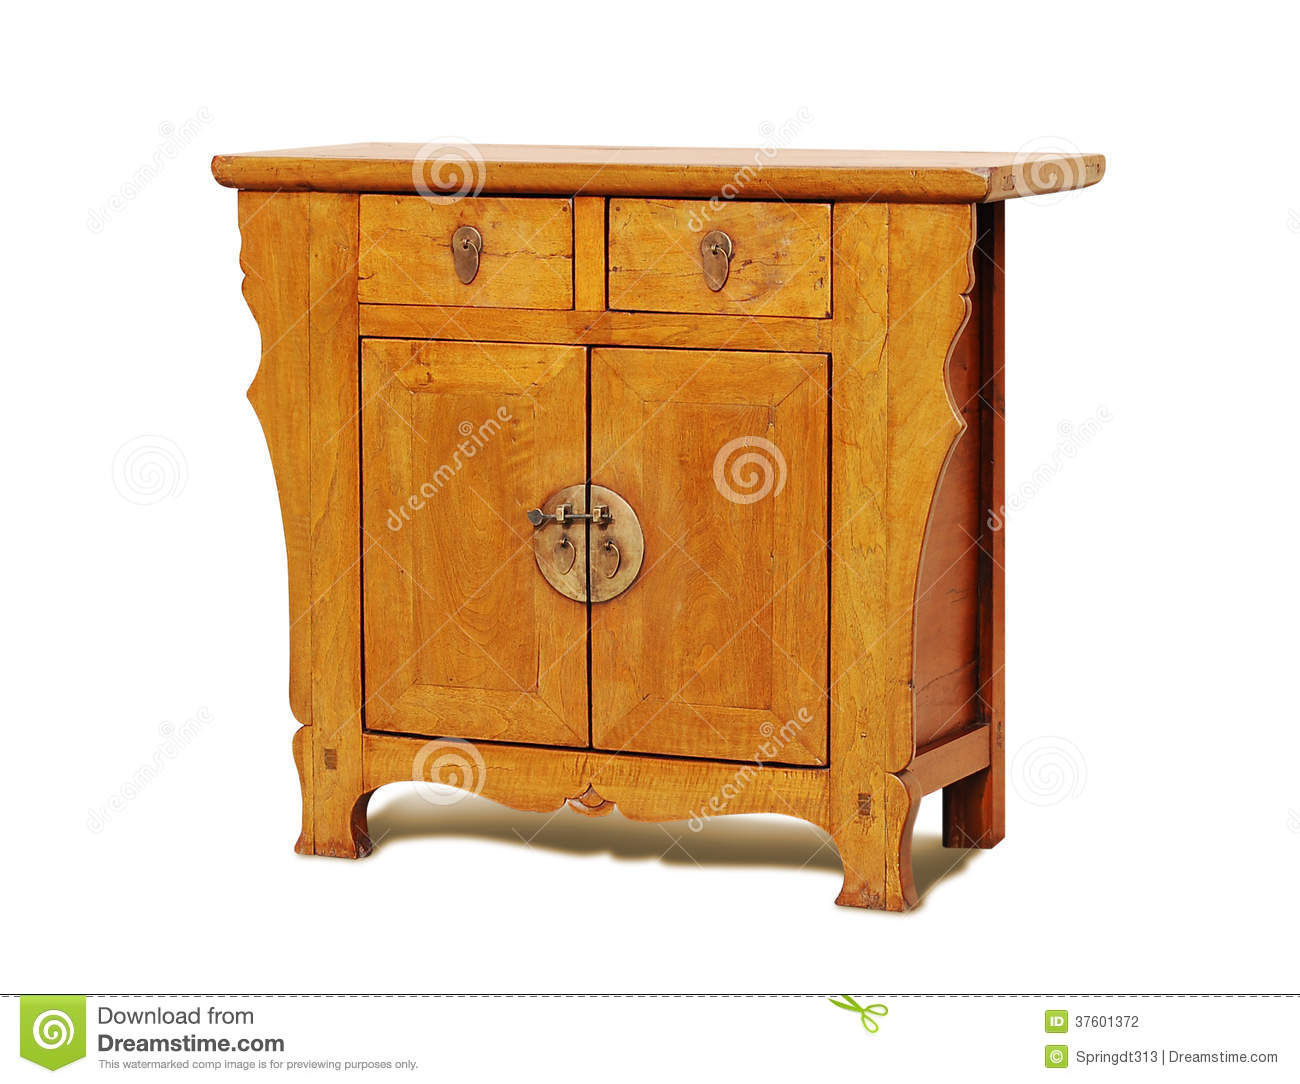 Antique furniture stock photo. Image of asian, nobody - 37601372